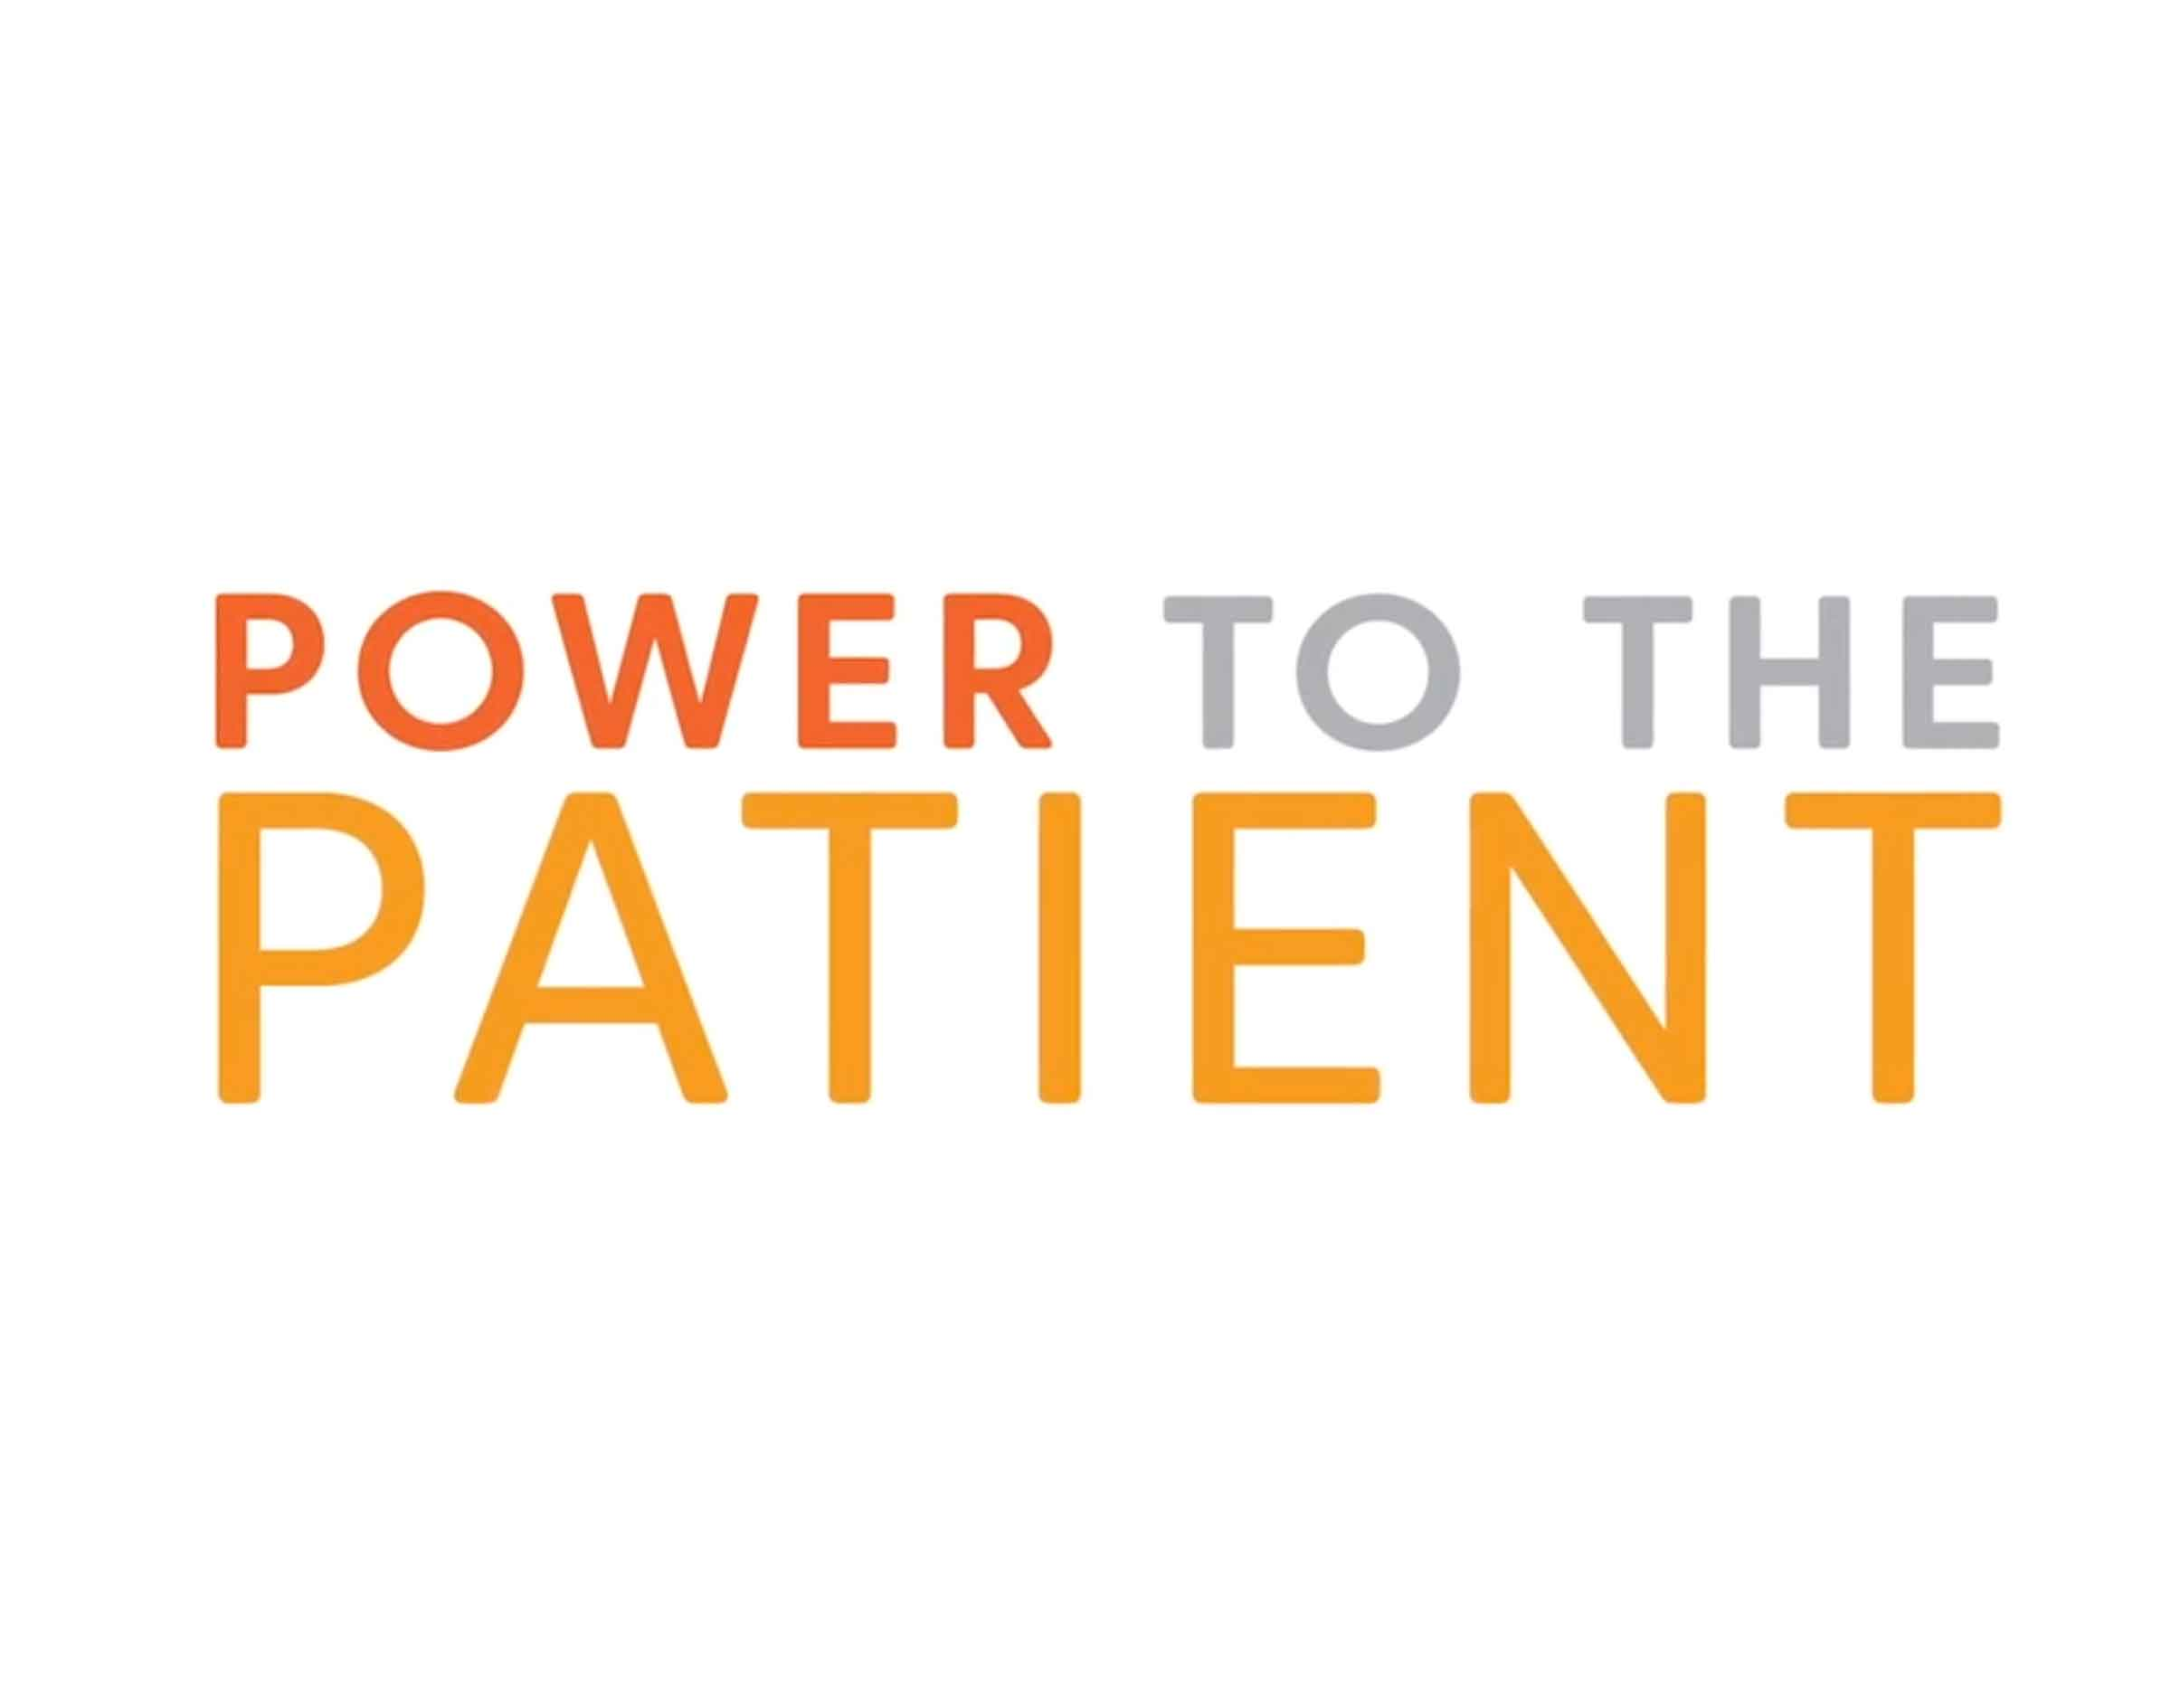 Lumina Imaging is bringing the power to the patient